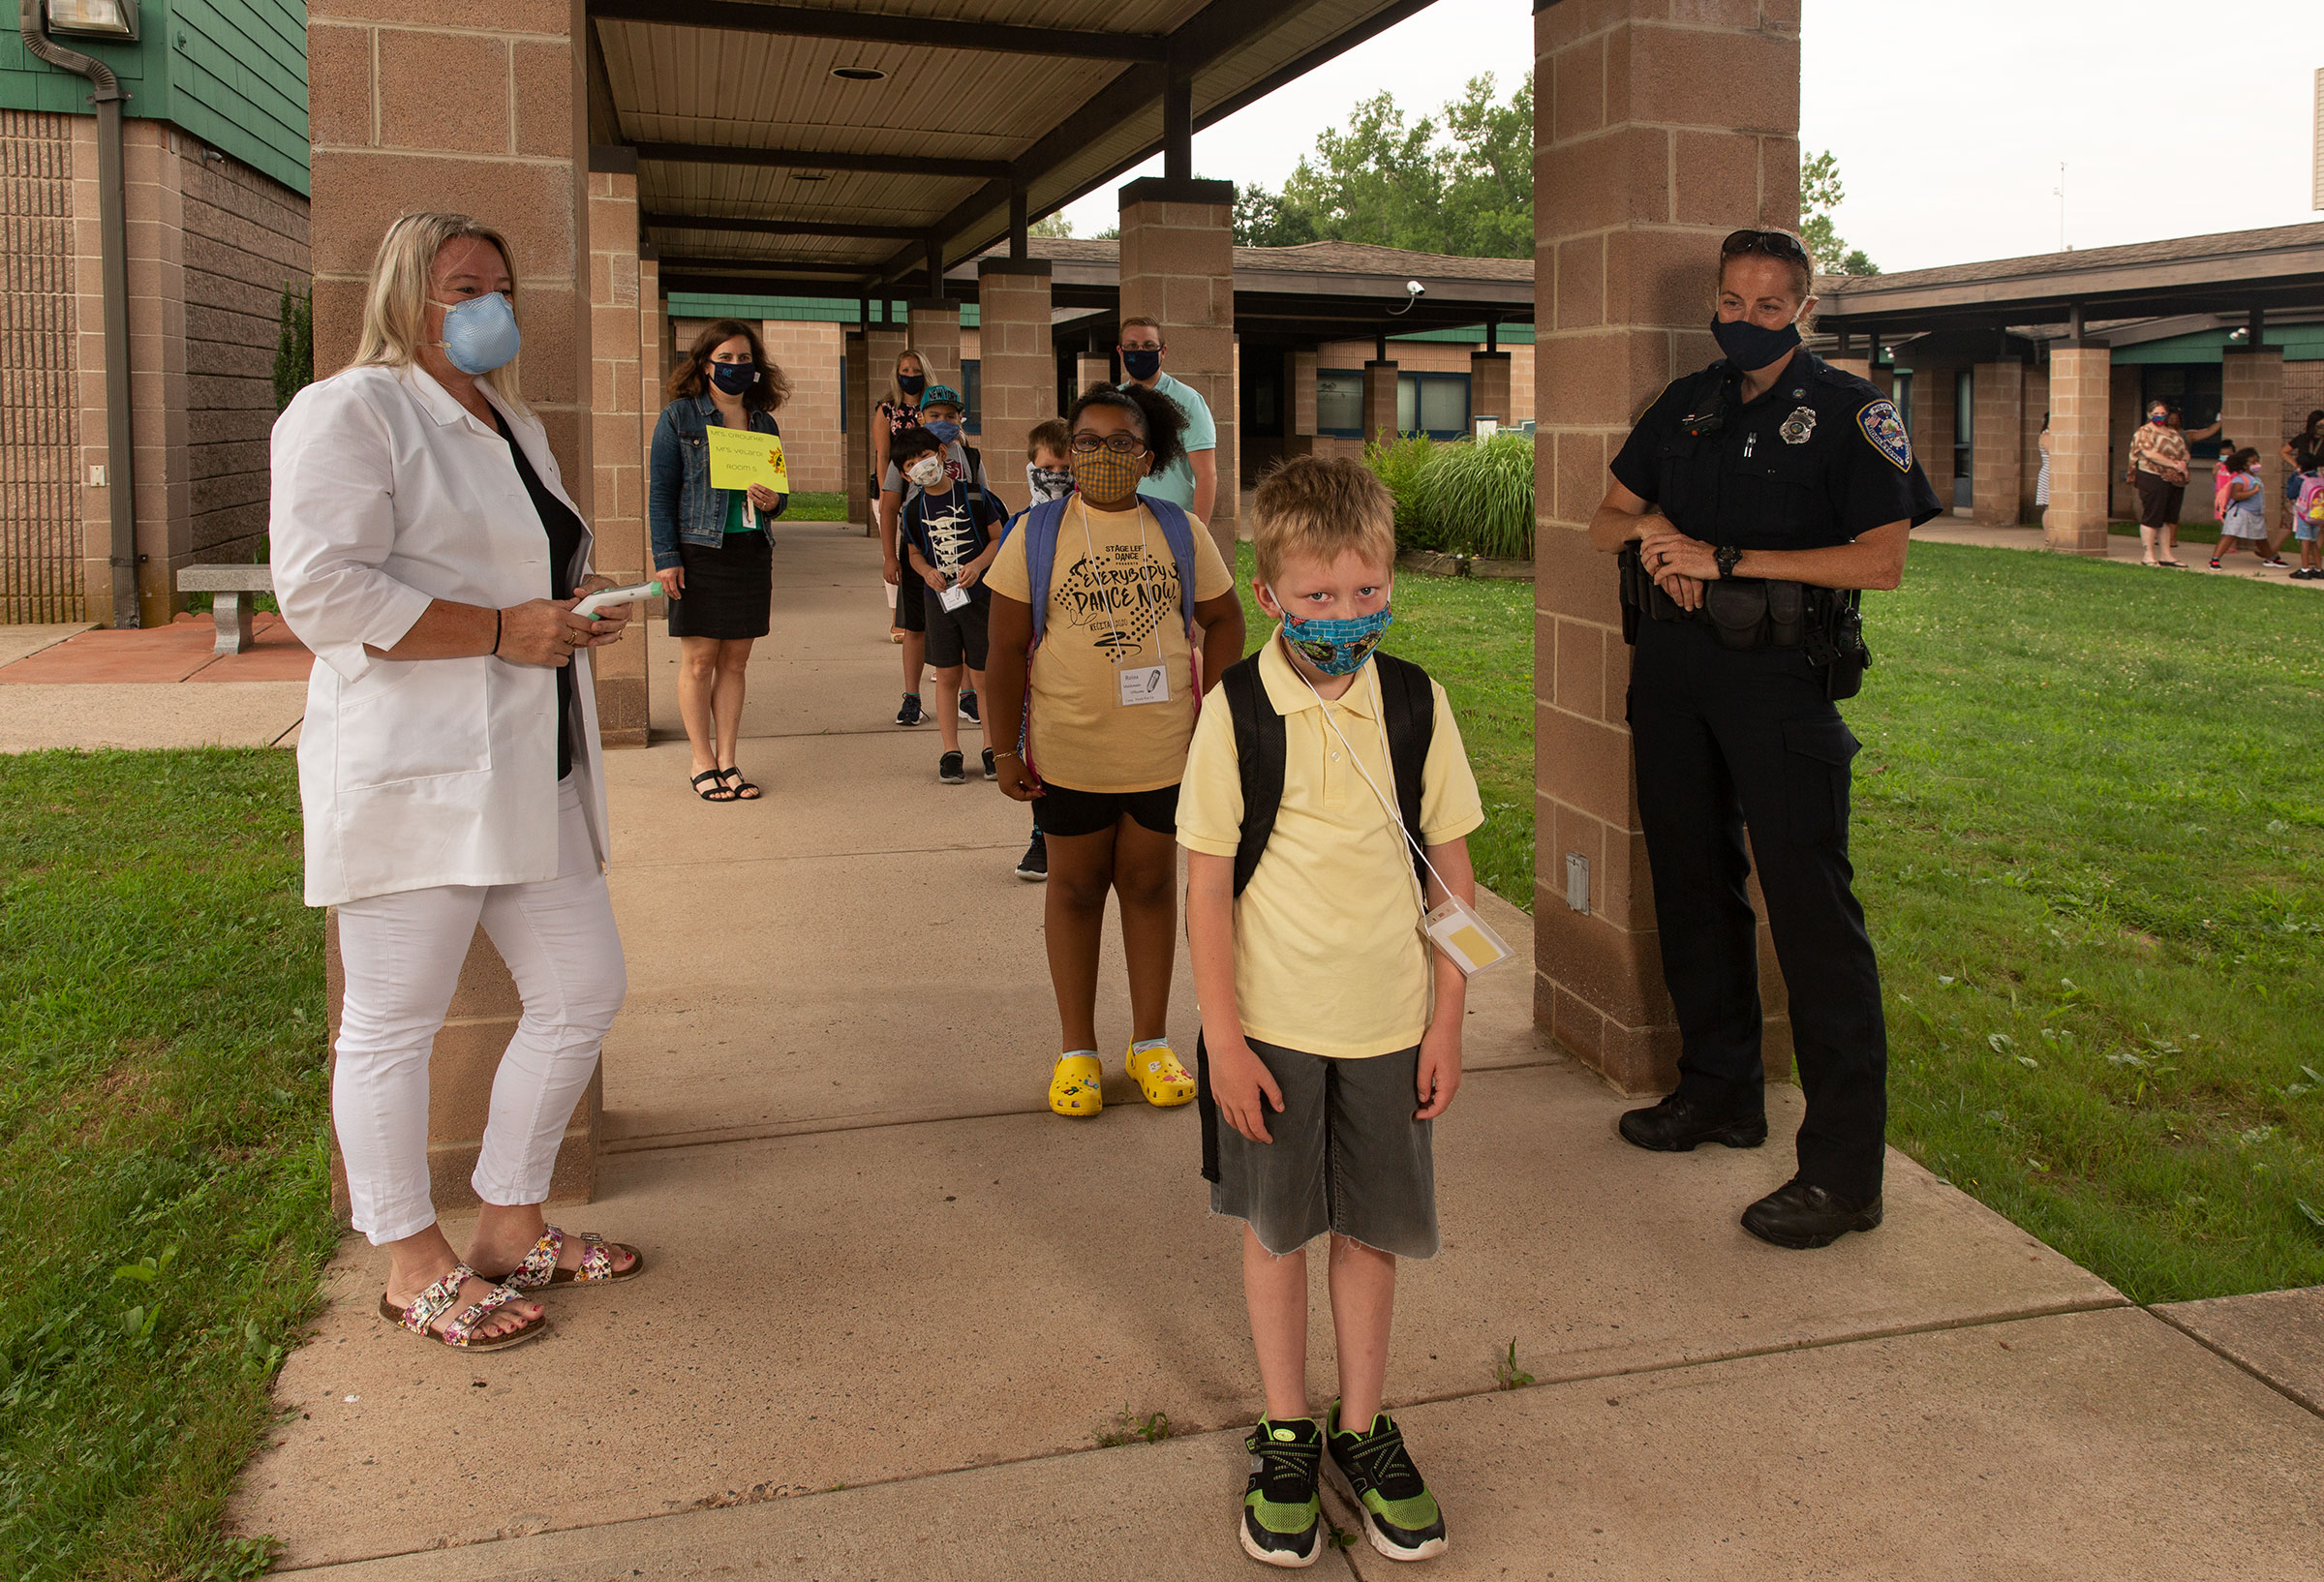 Nurse Sarah Ladd and school resource officer Kristen Tyrseck ensure kids keep a safe distance apart as they enter Wesley Elementary School                      in Middletown, Conn.